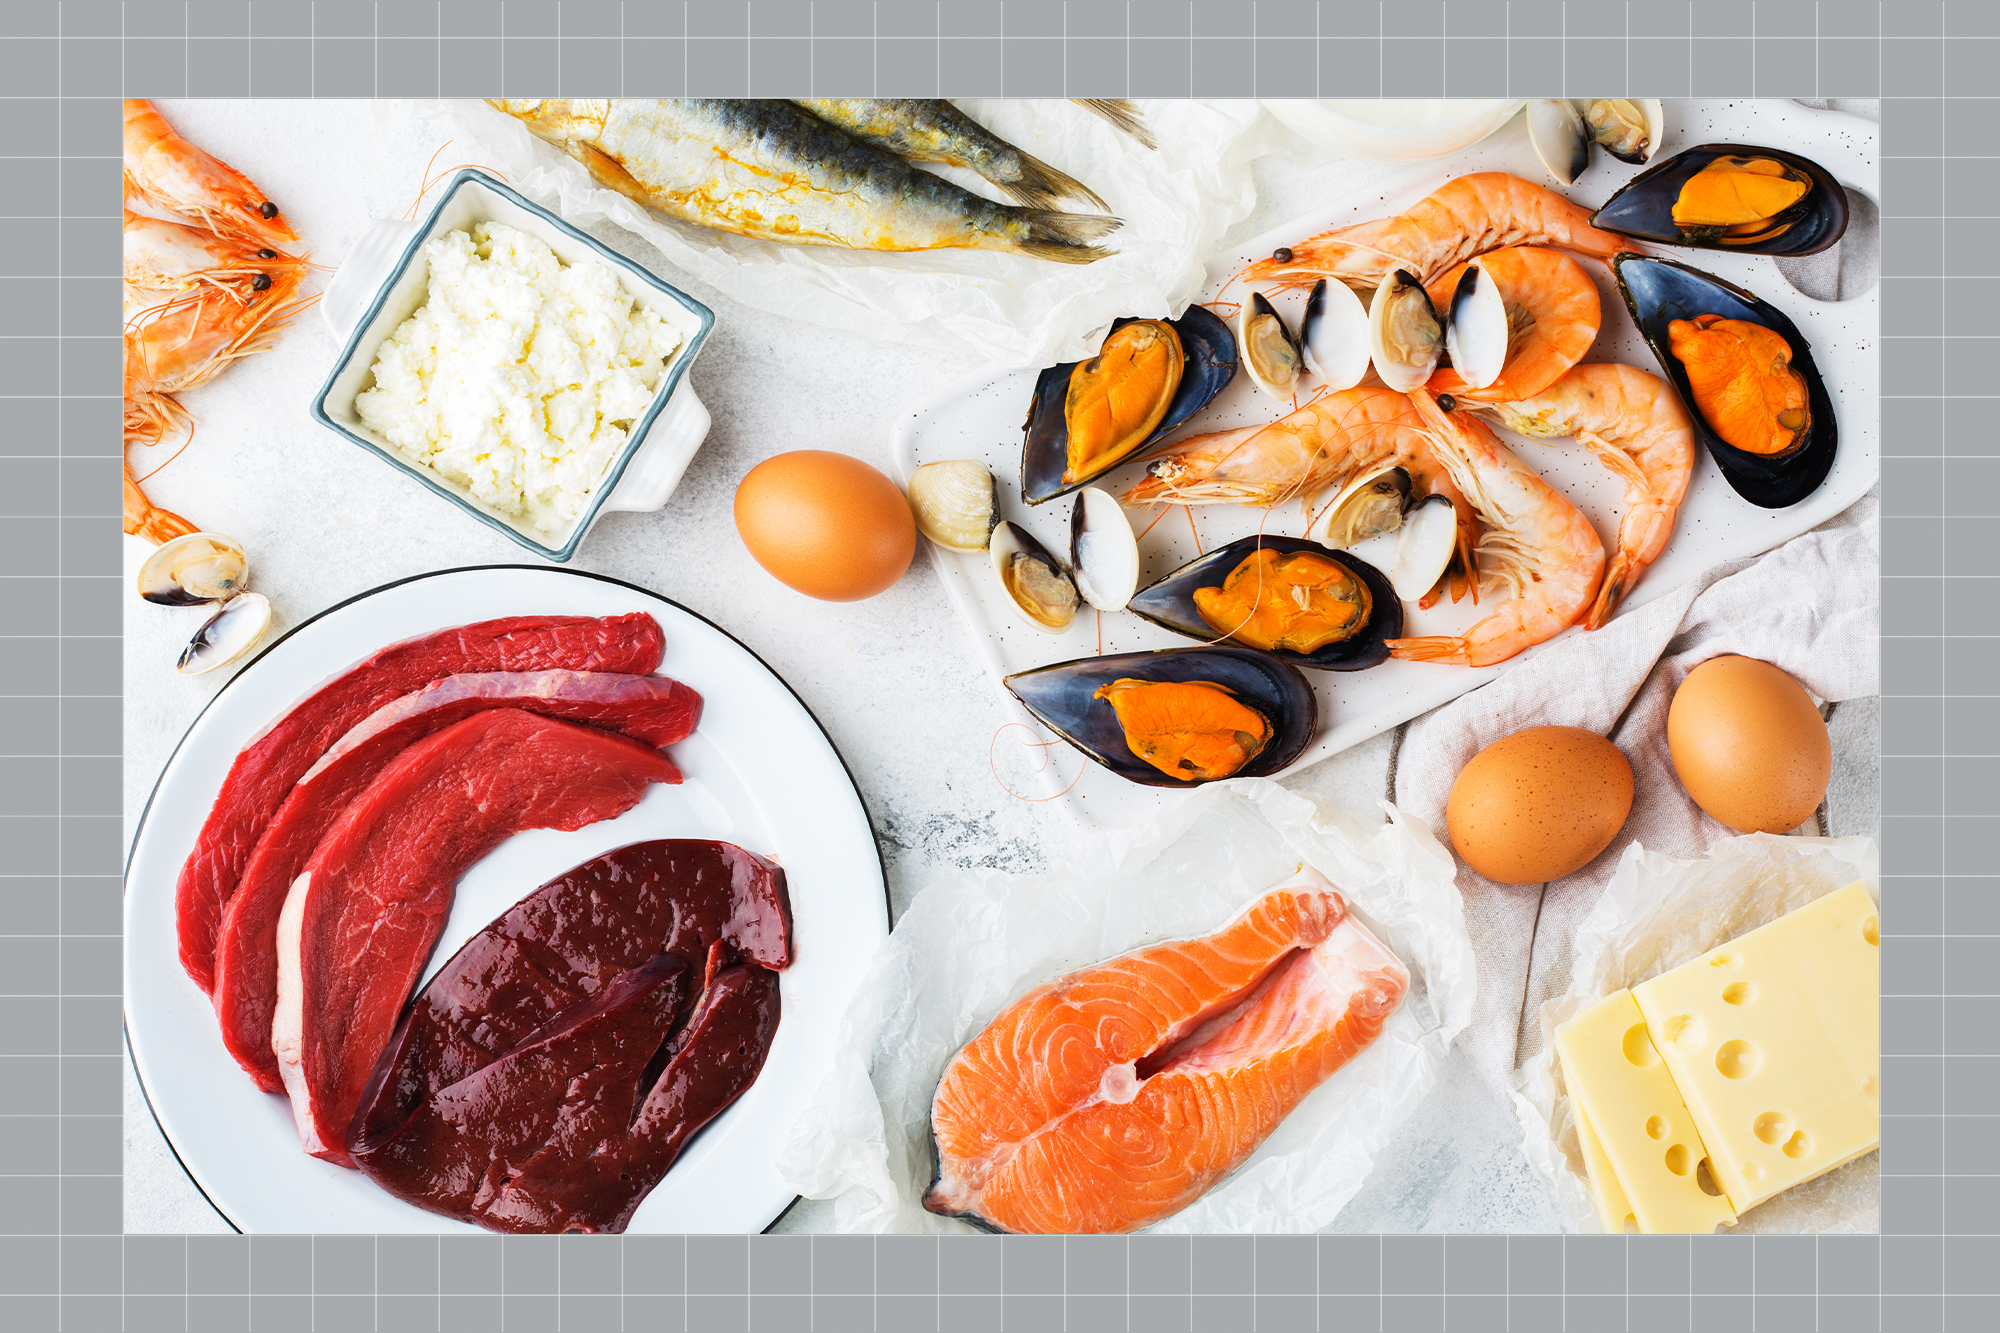 Assortment of healthy vitamin B12, cobalamin source food on a designed background